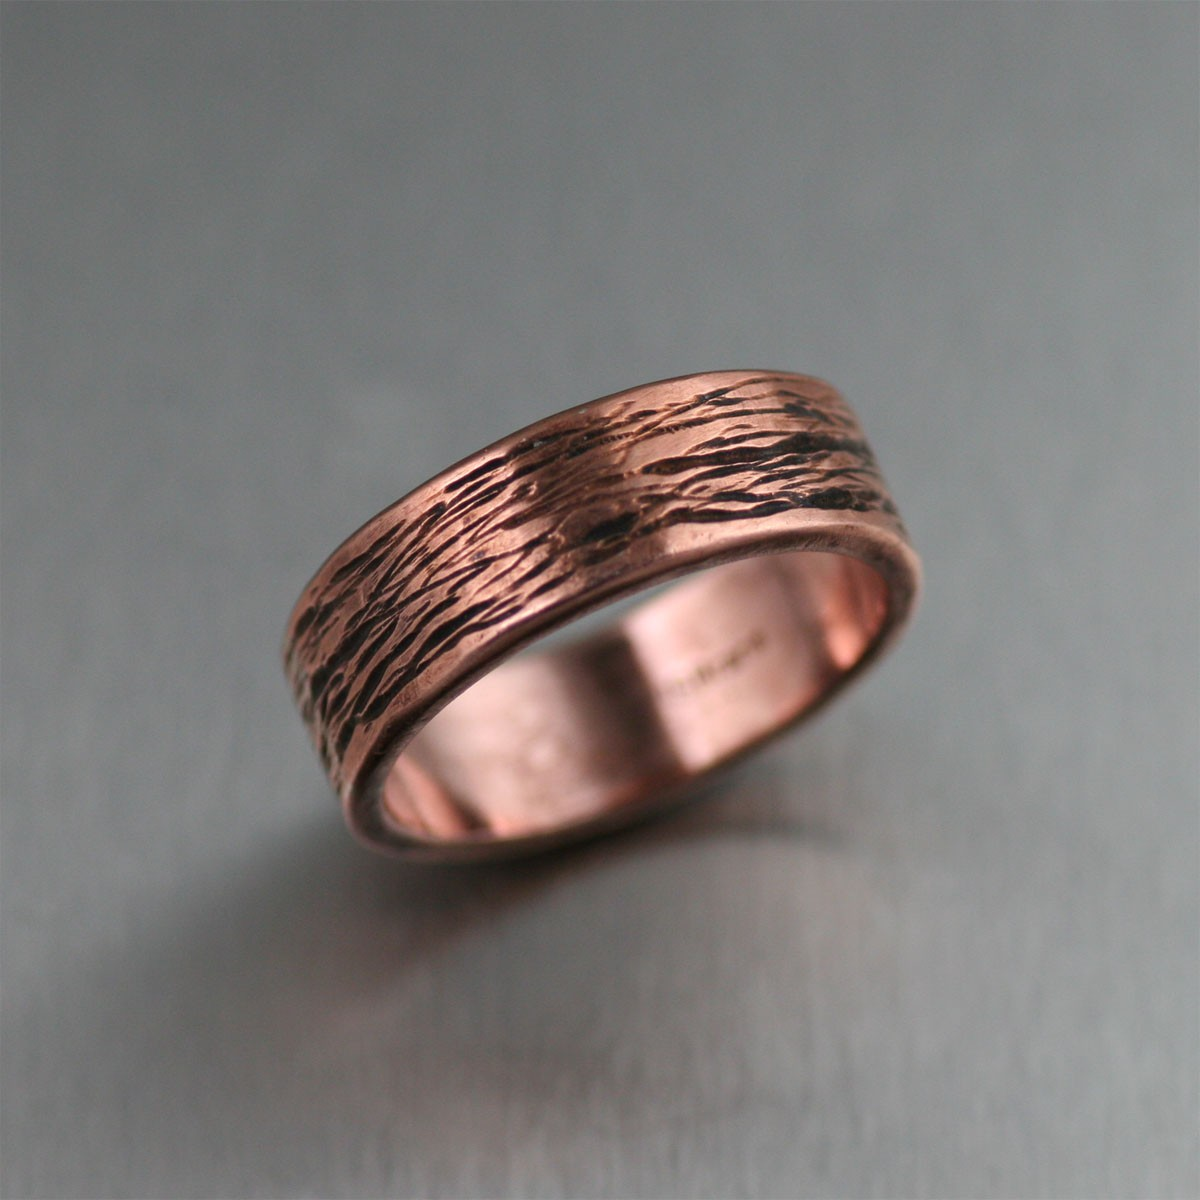 The best thing about copper jewelry